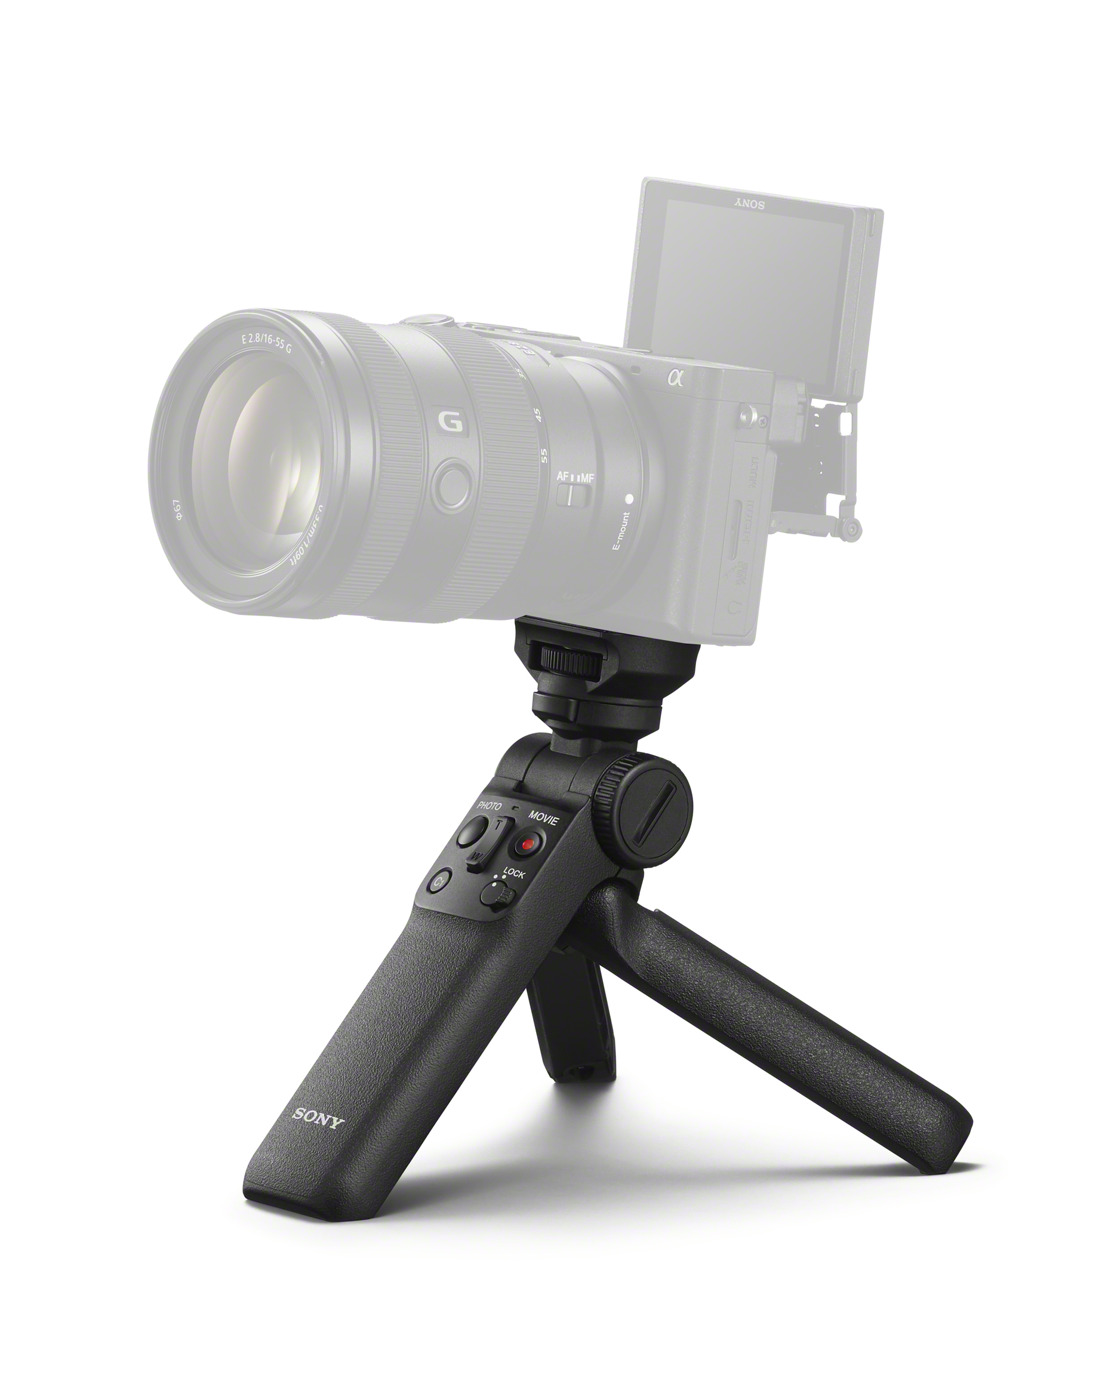 Sony Introduces New GP-VPT2BT Wireless Shooting Grip